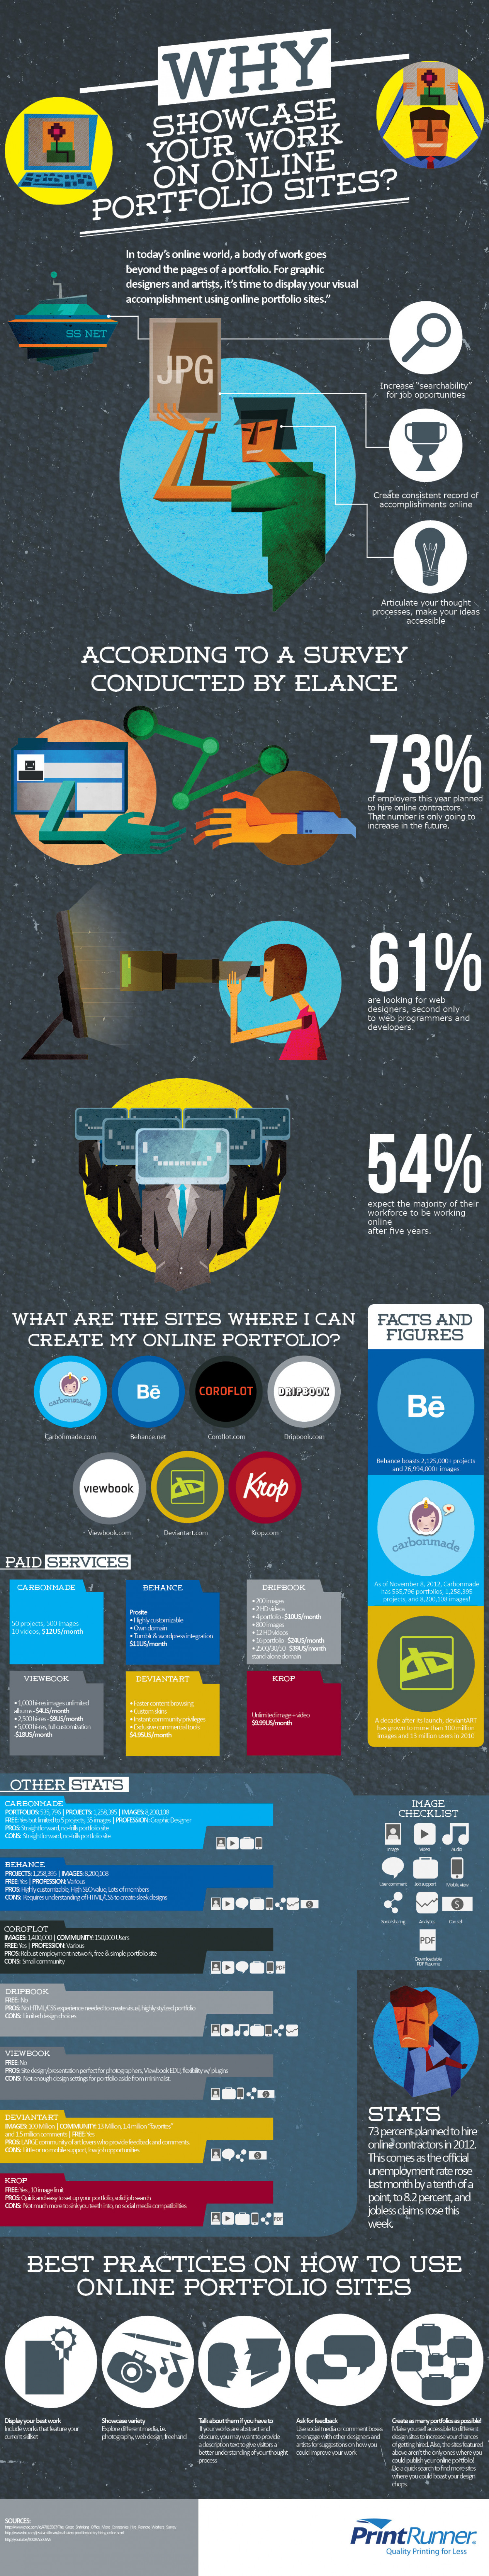 Why Showcase Your Work on Online Portfolio Sites Infographic